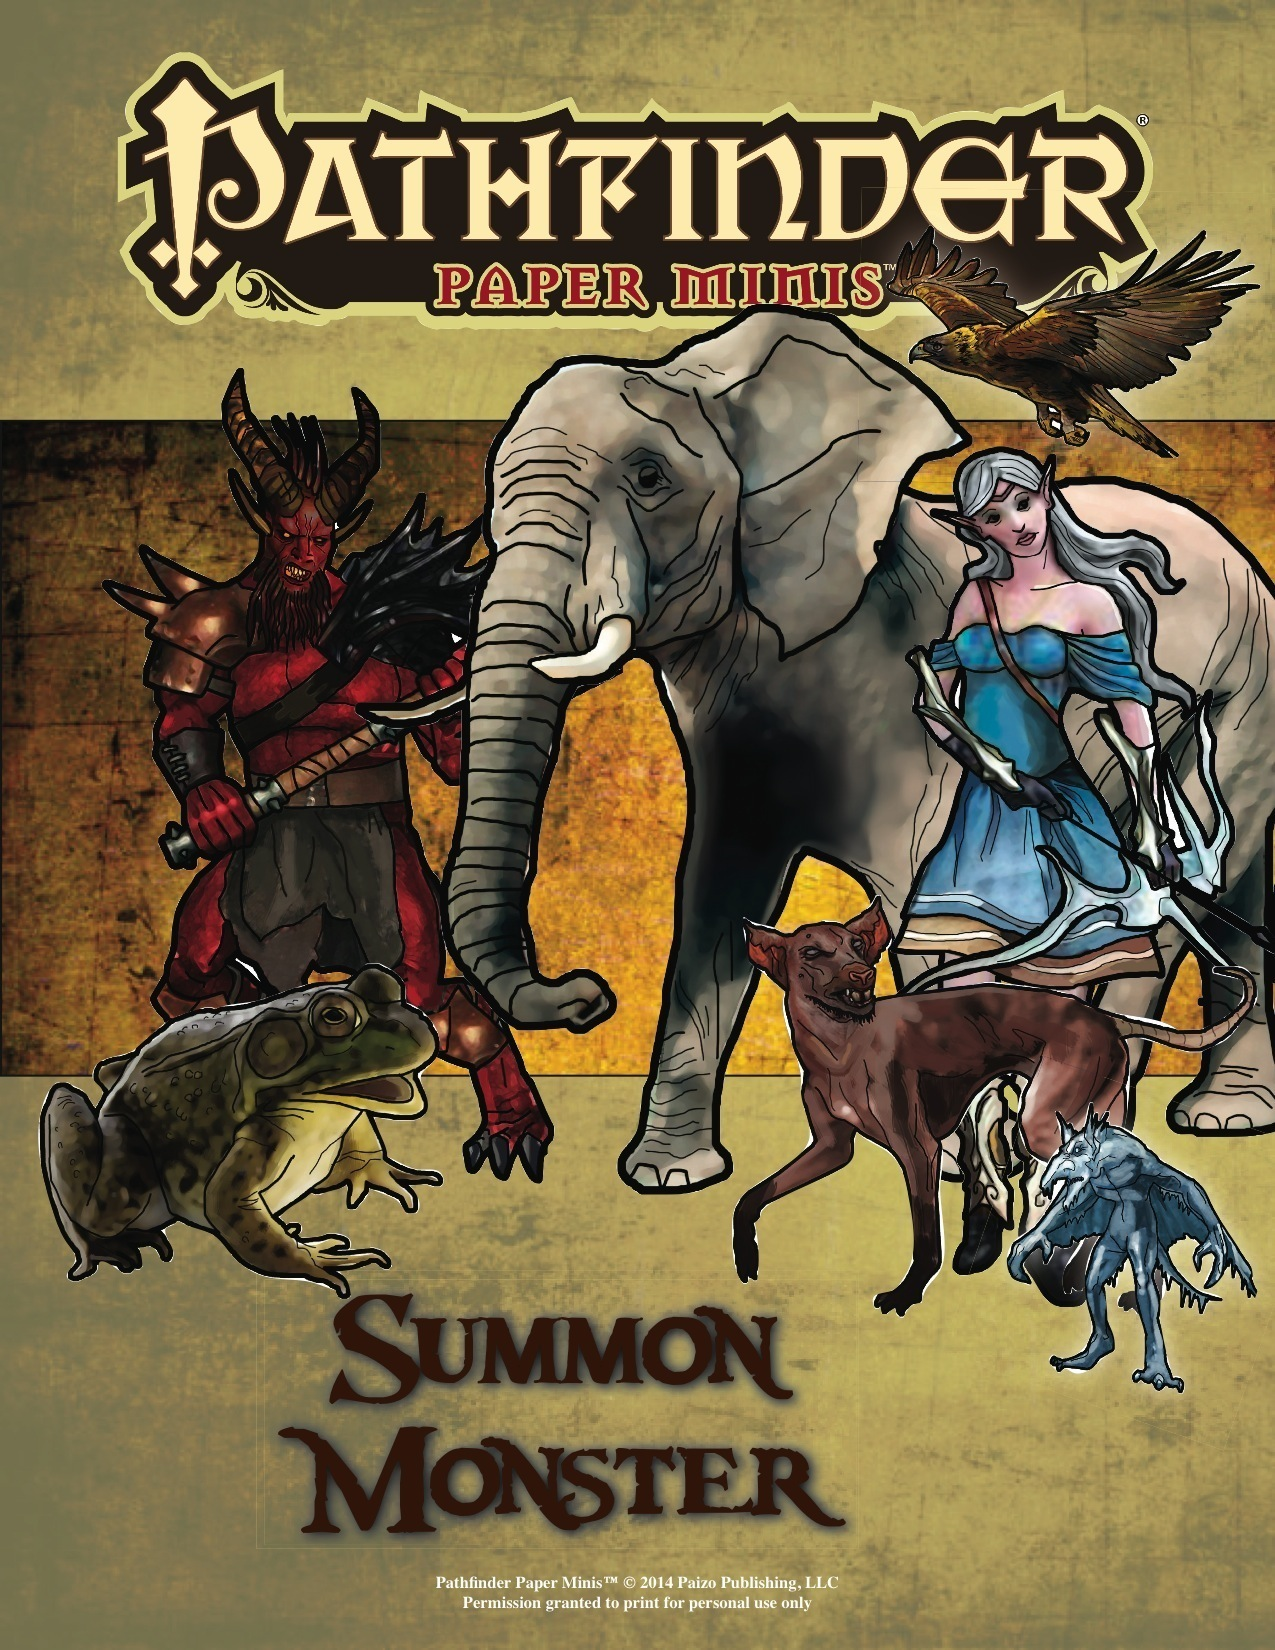 PATHFINDER PLAYER'S HANDBOOK PDF DOWNLOAD